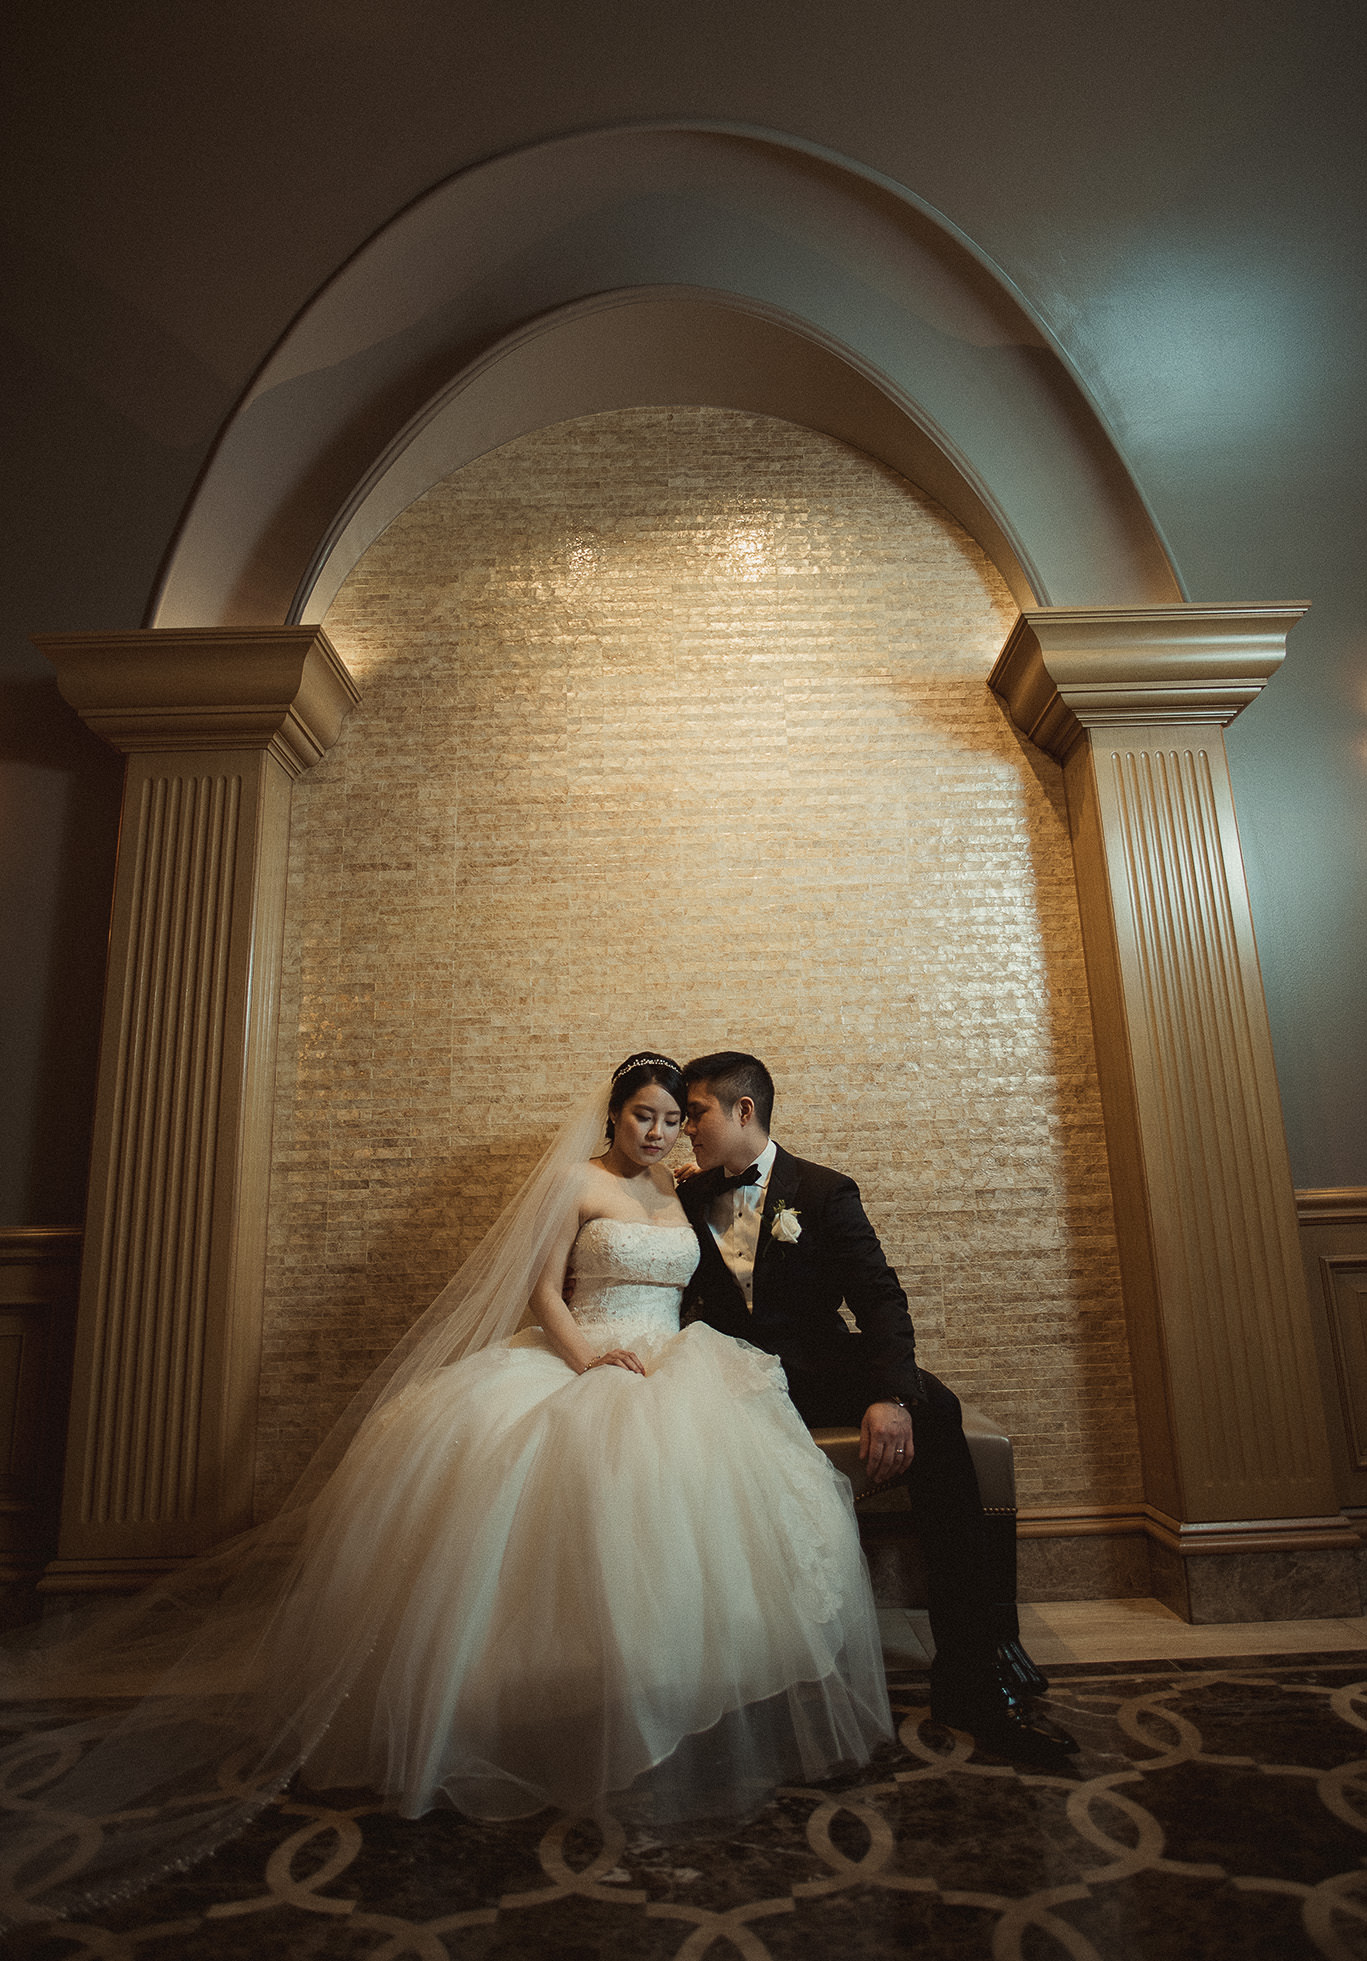 St-regis-wedding-korean-houston-tx-photographer